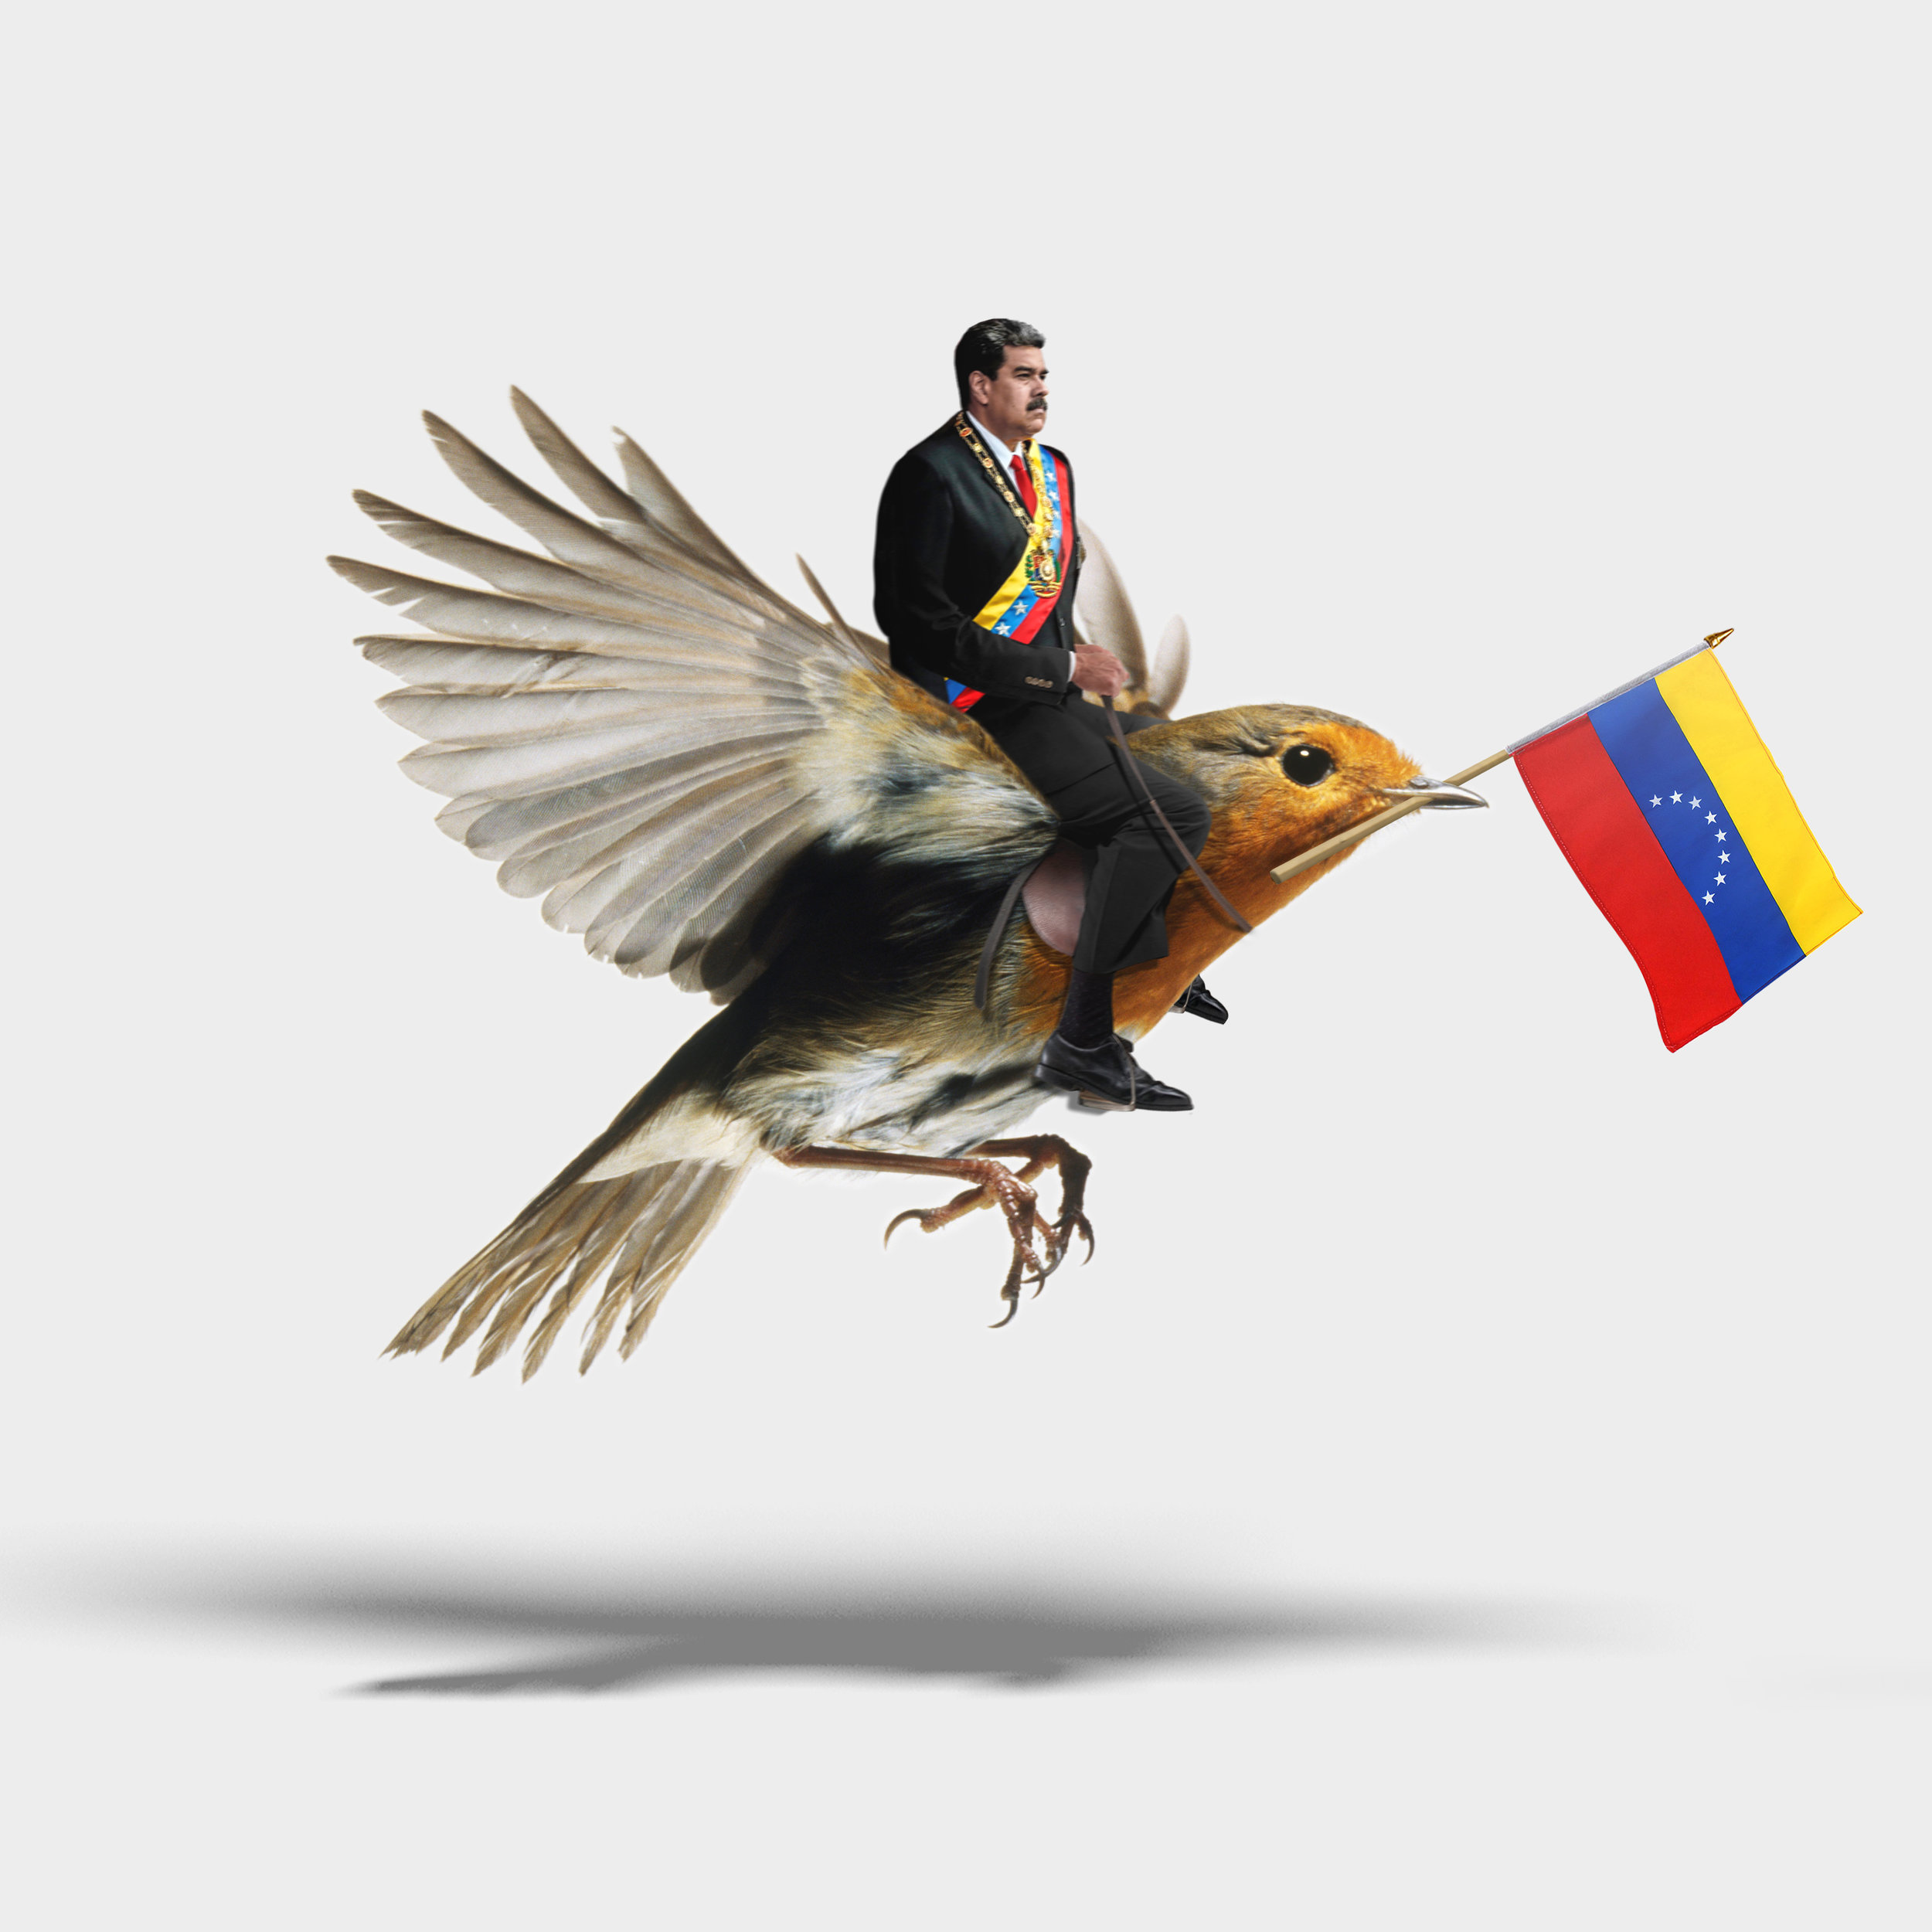 Maduro Against the Killed Drones